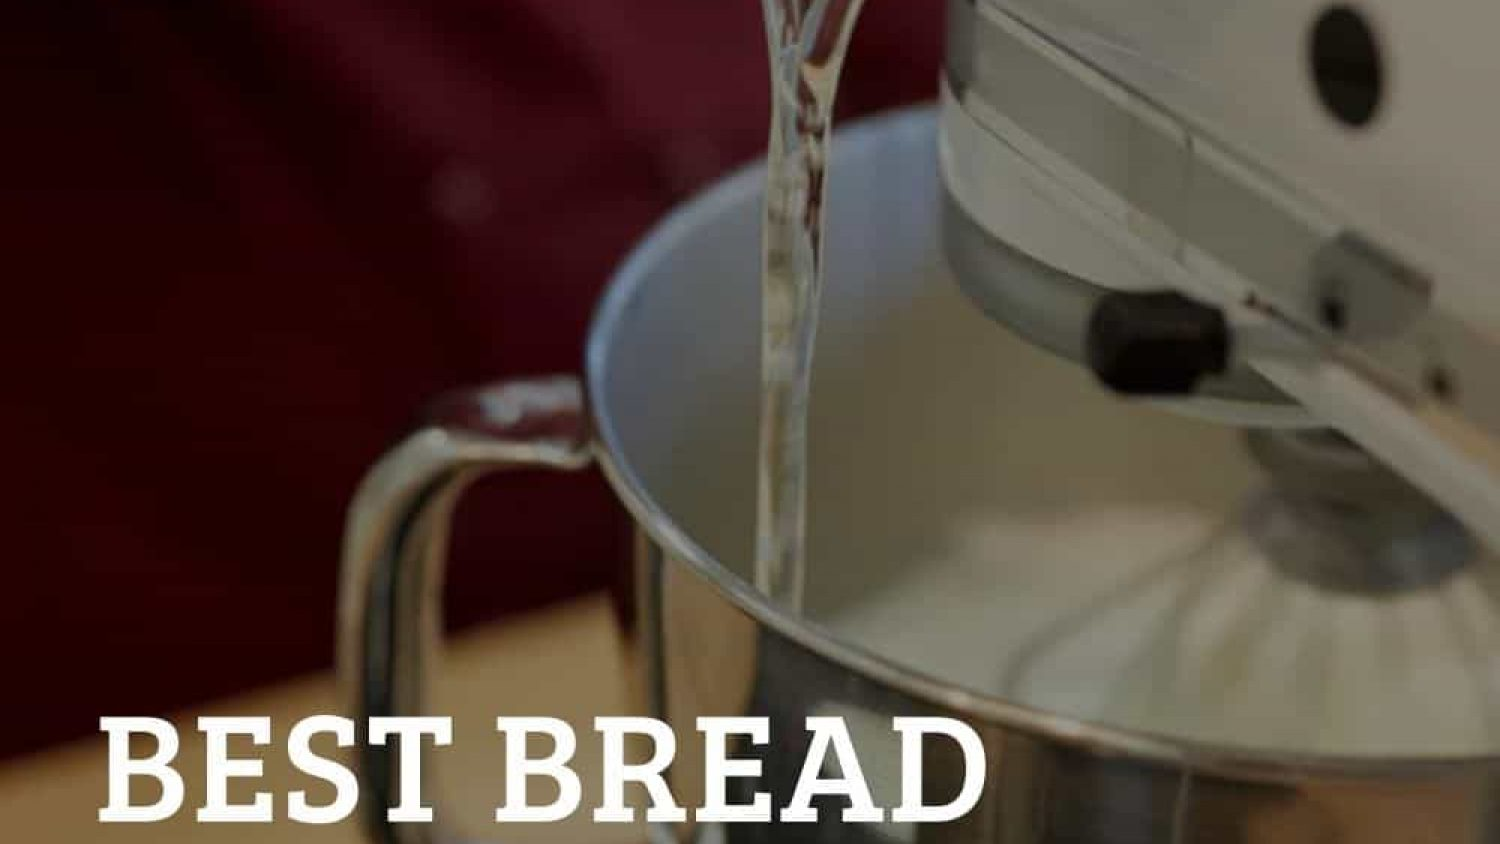 5 Perfect Bread Mixers To Help You Make The Best Slice of Bread